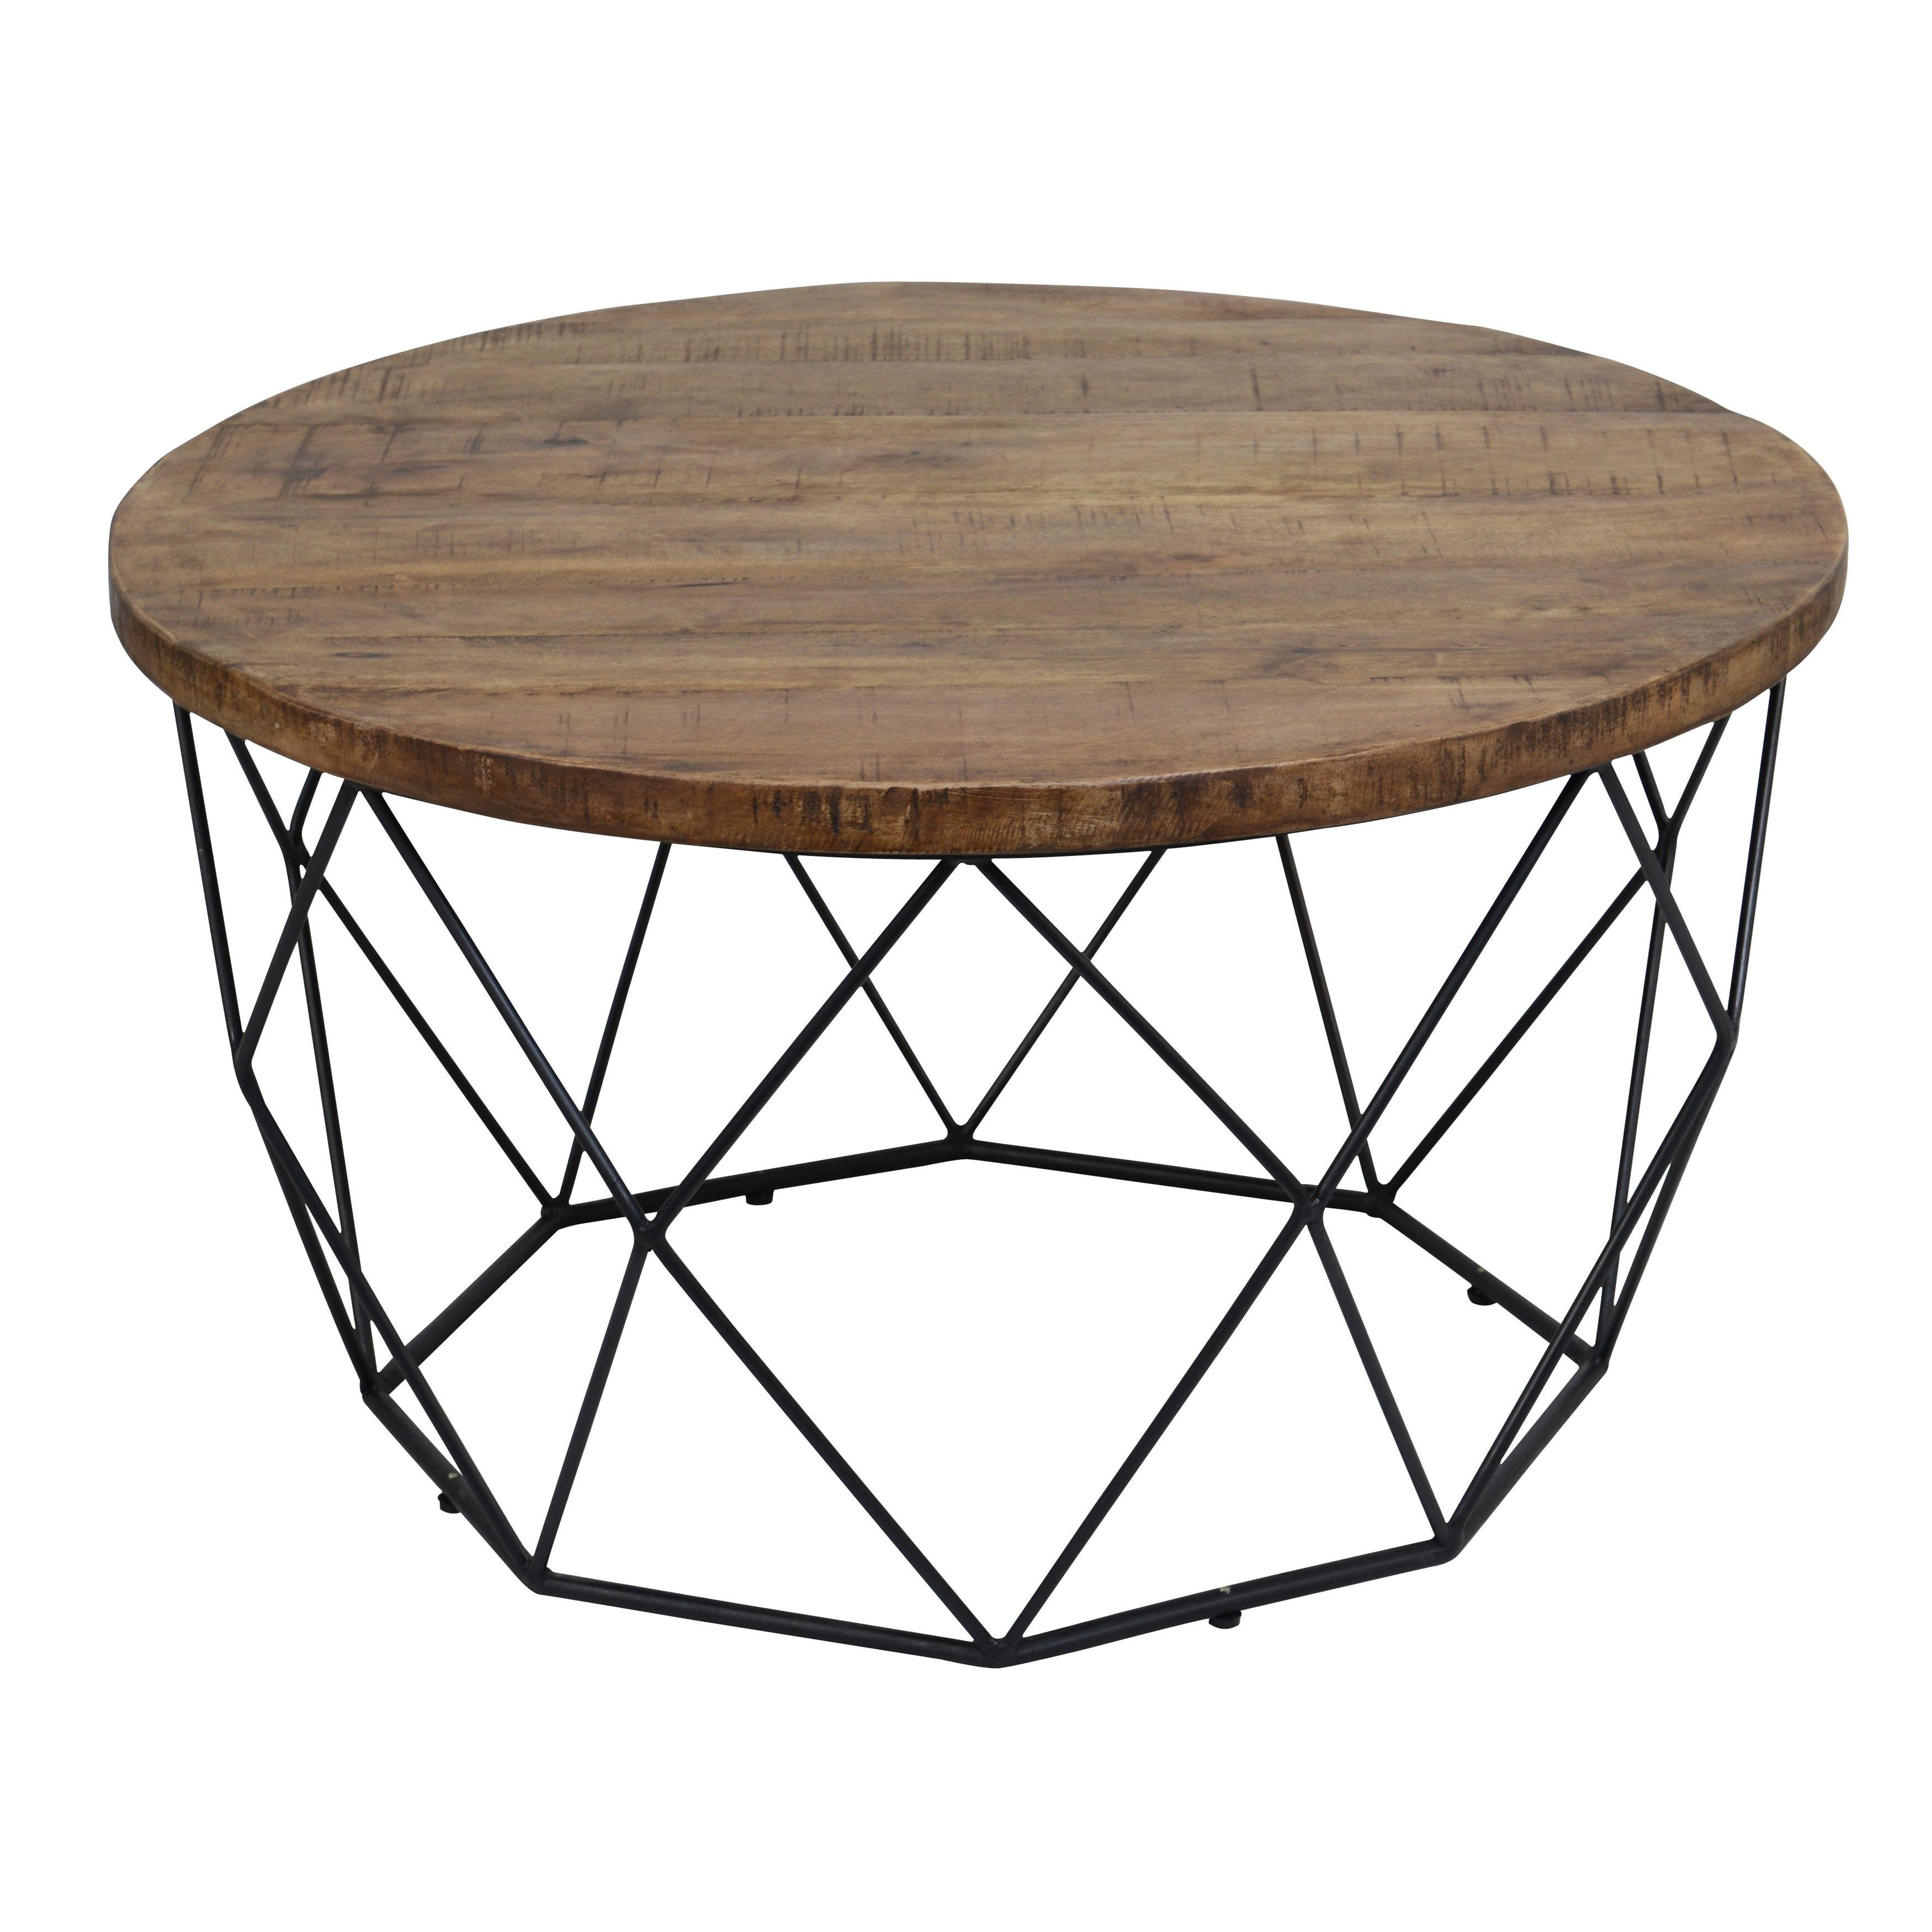 Chester Wood And Iron Geometric Round Coffee Table By Kosas Home Round Wooden Coffee Table Coffee Table Wood Round Coffee Table